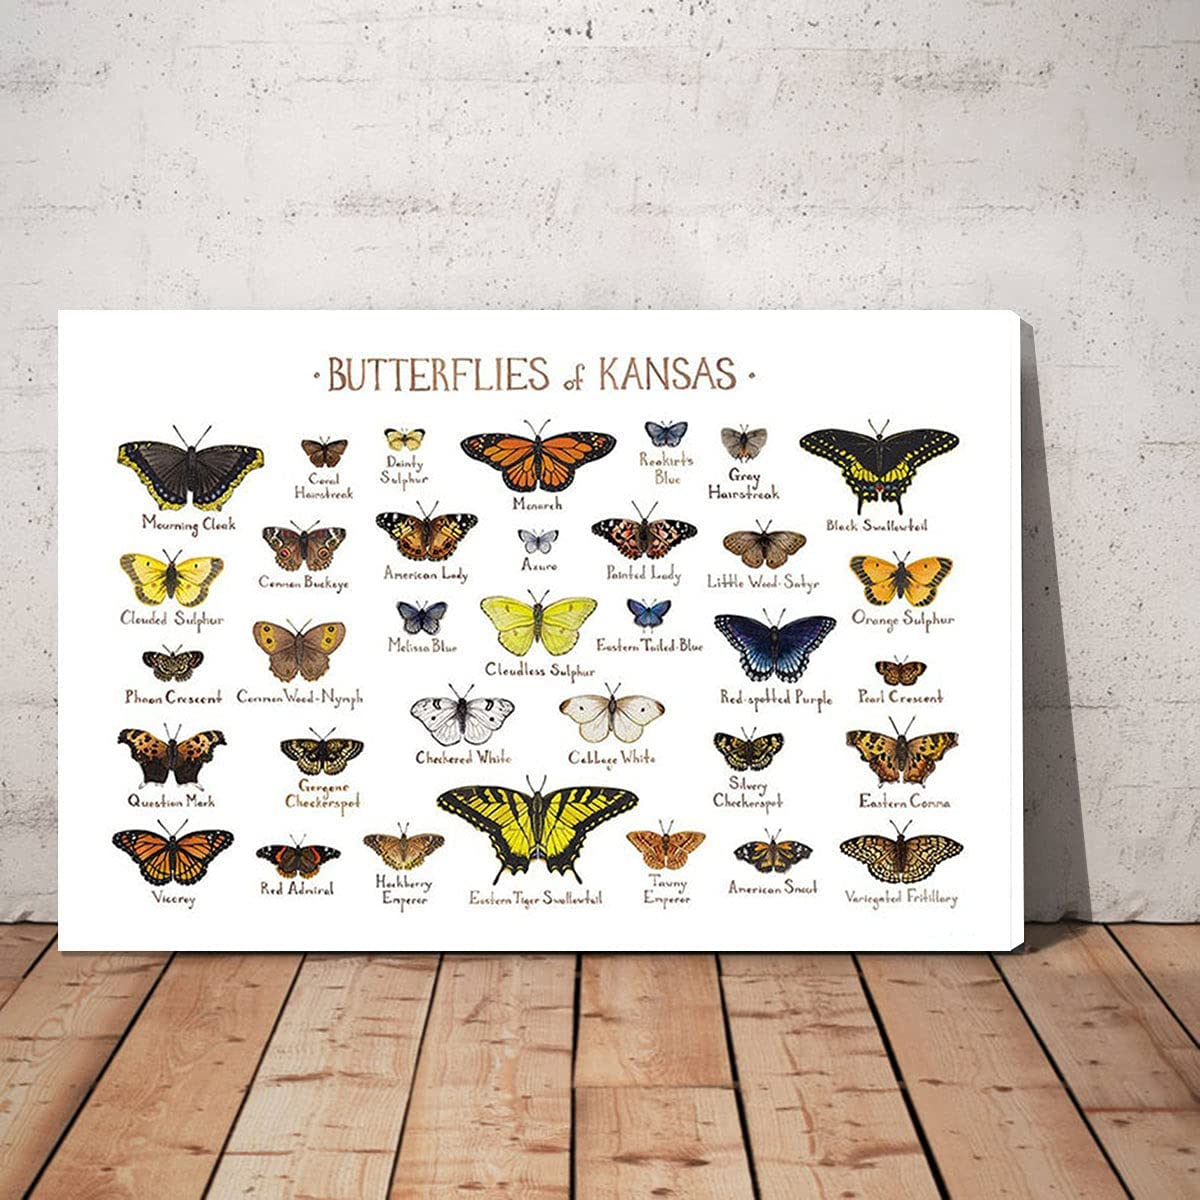 LuiV HAM Popular shop is the lowest price challenge Types of Butterflies Knowledge Online limited product Canvas Art o Wall